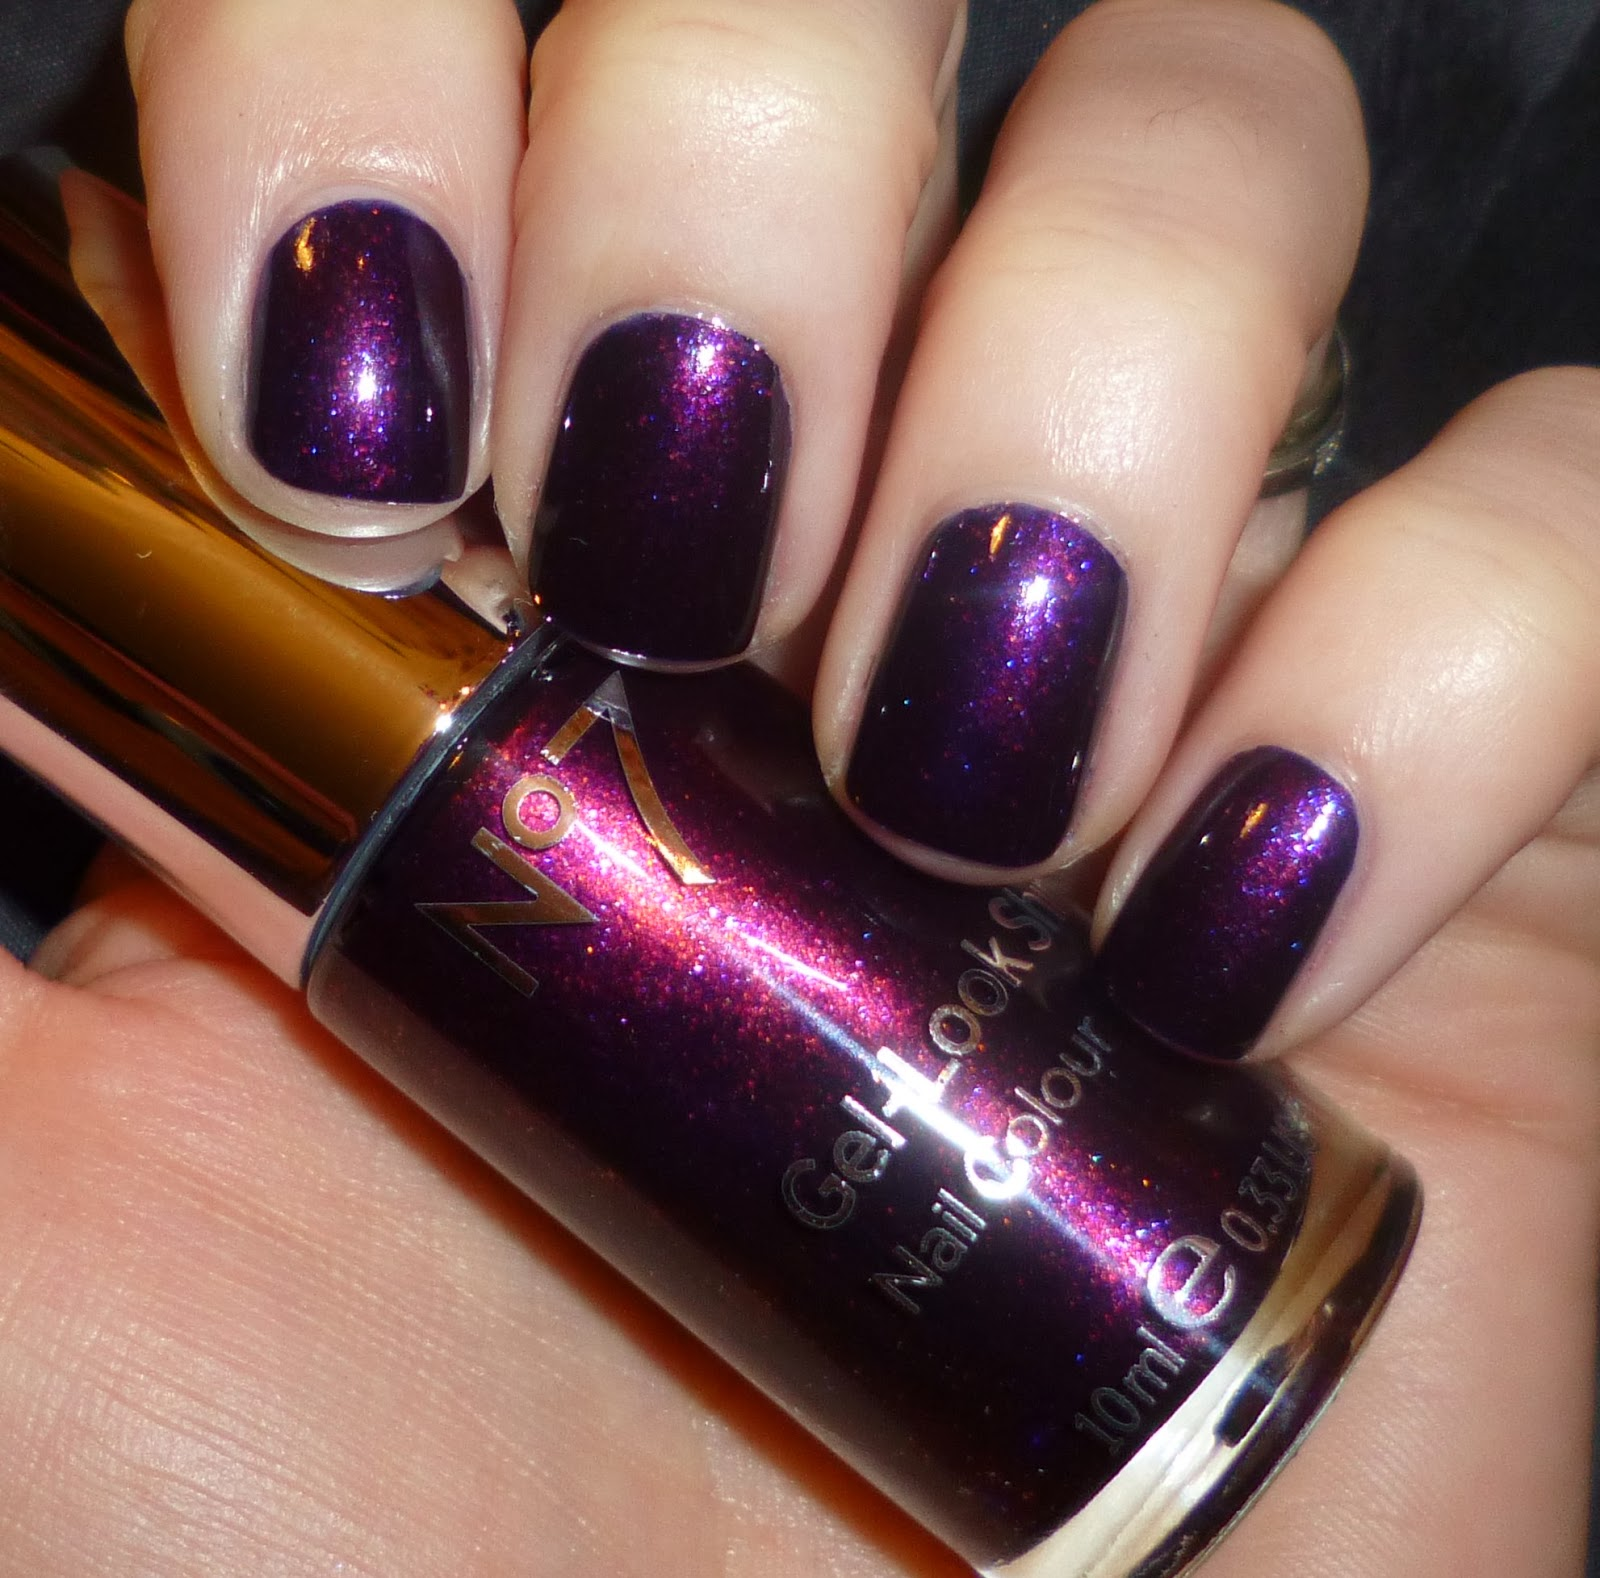 Lou is Perfectly Polished: Swatch: Galaxy by Boots No 7